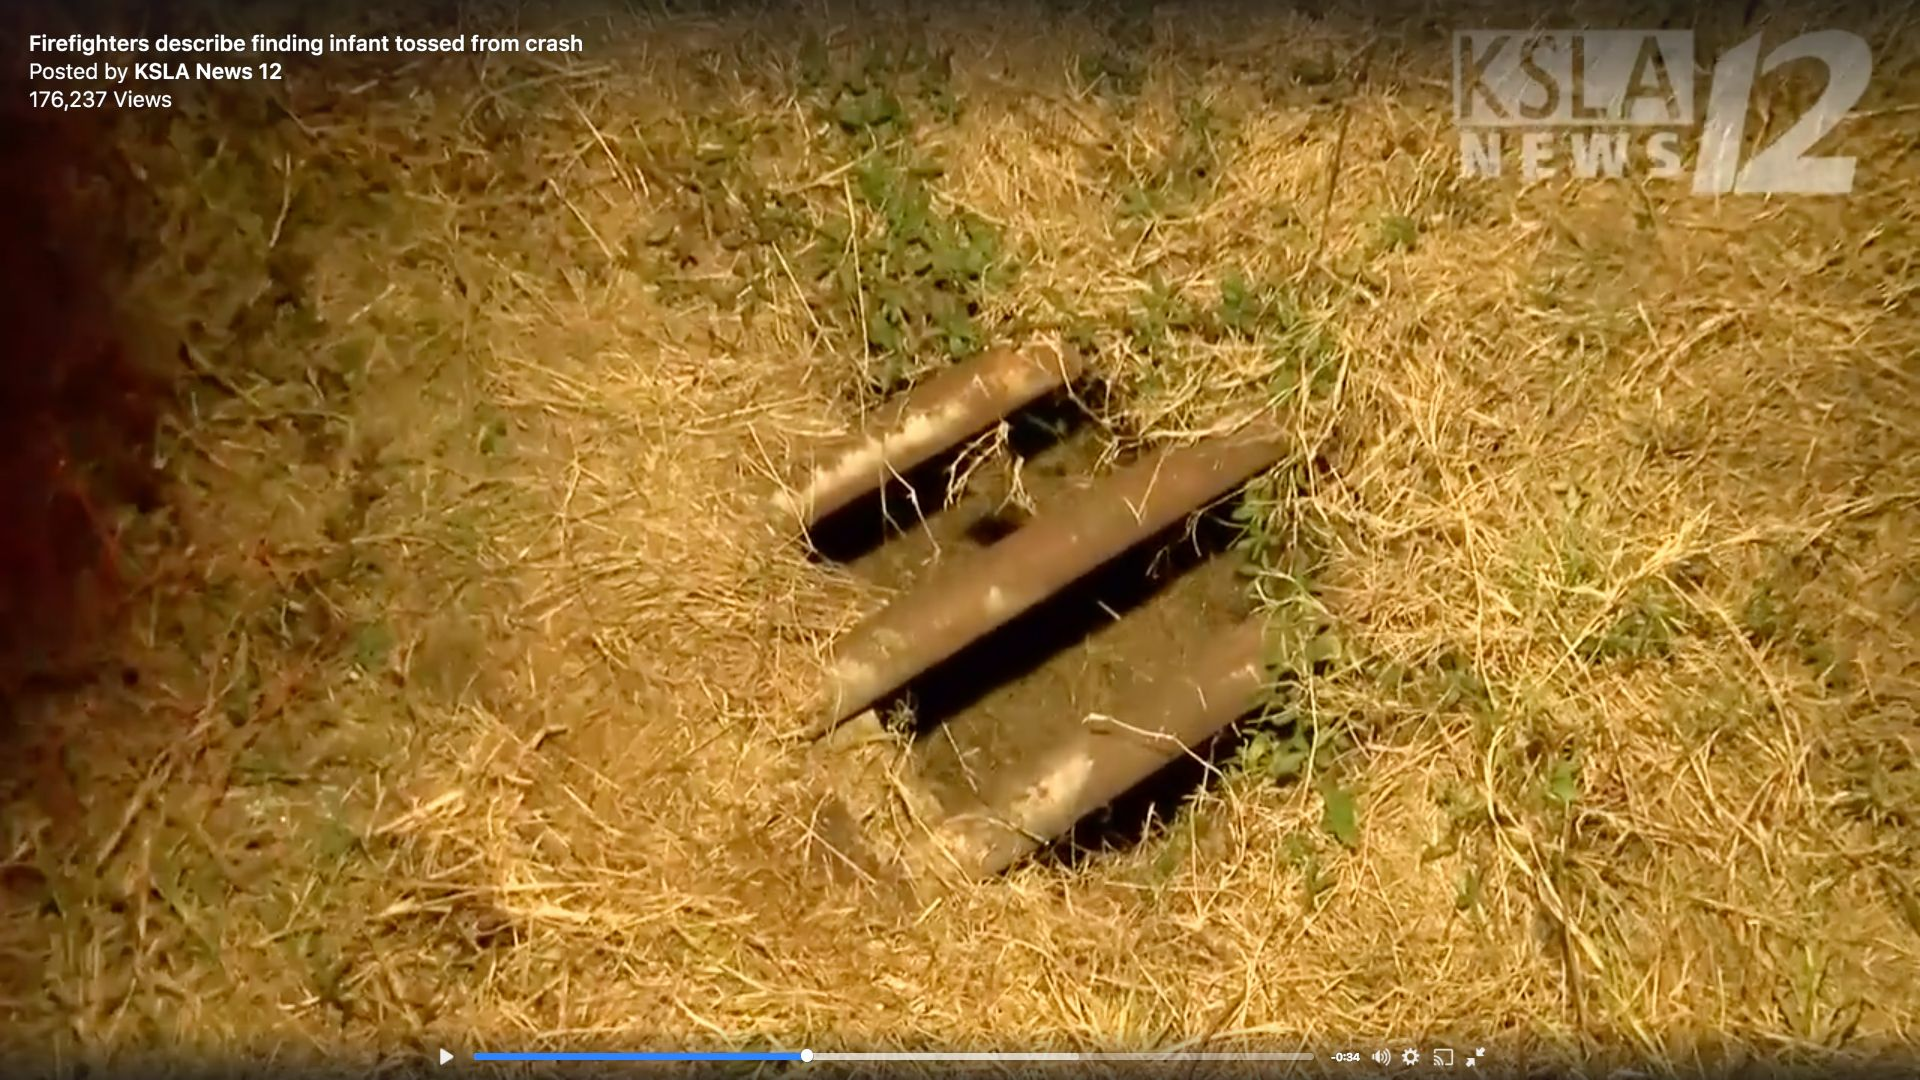 An 8monthold girl was found inside this storm drain after being ejected from a car